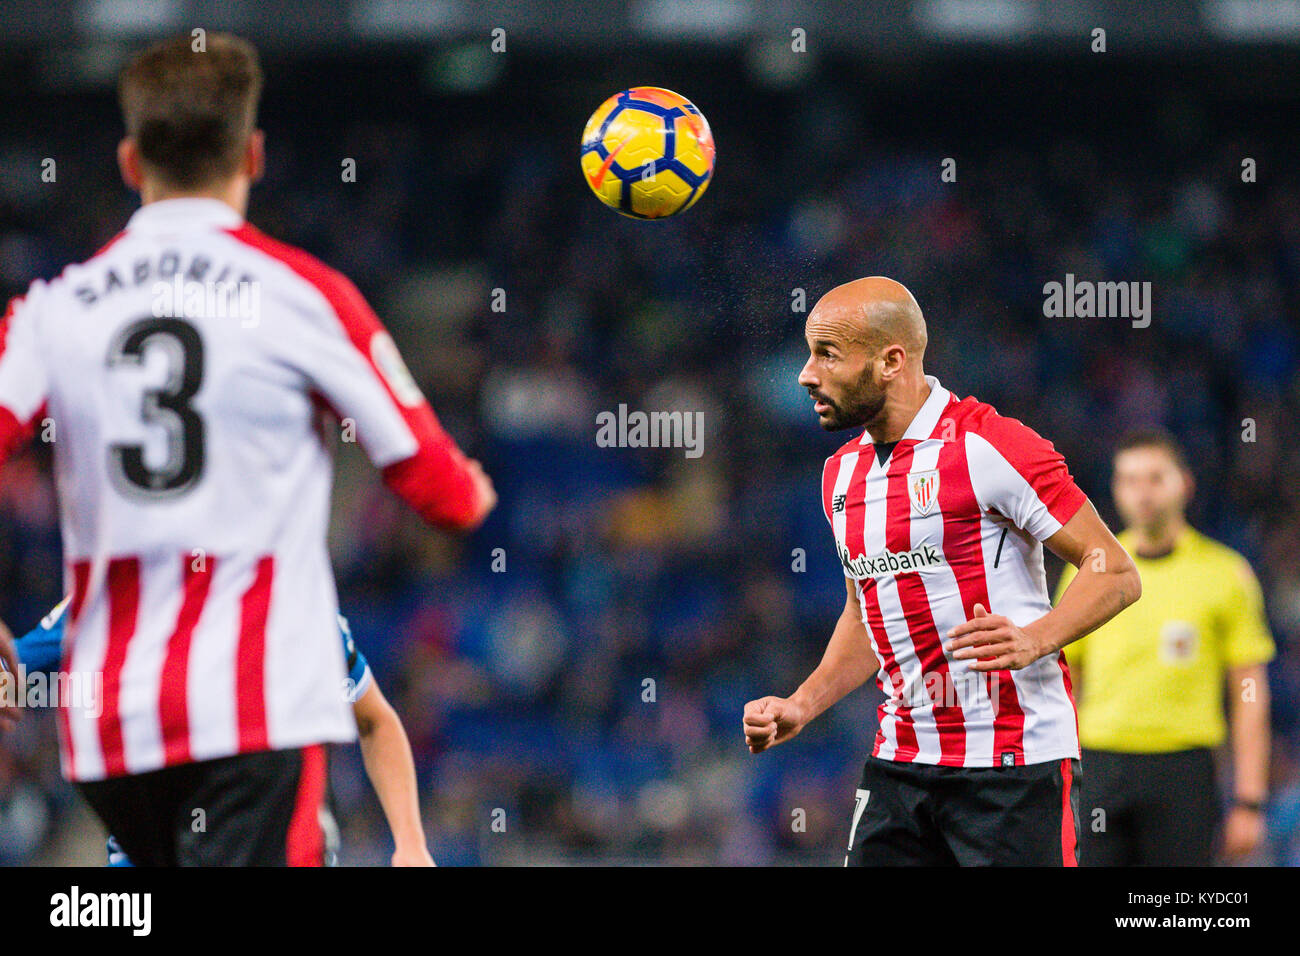 Athletic Club midfielder Mikel Rico (17) during the match between RCD Espanyol v Athletic Club, for the round 19 - Stock Image